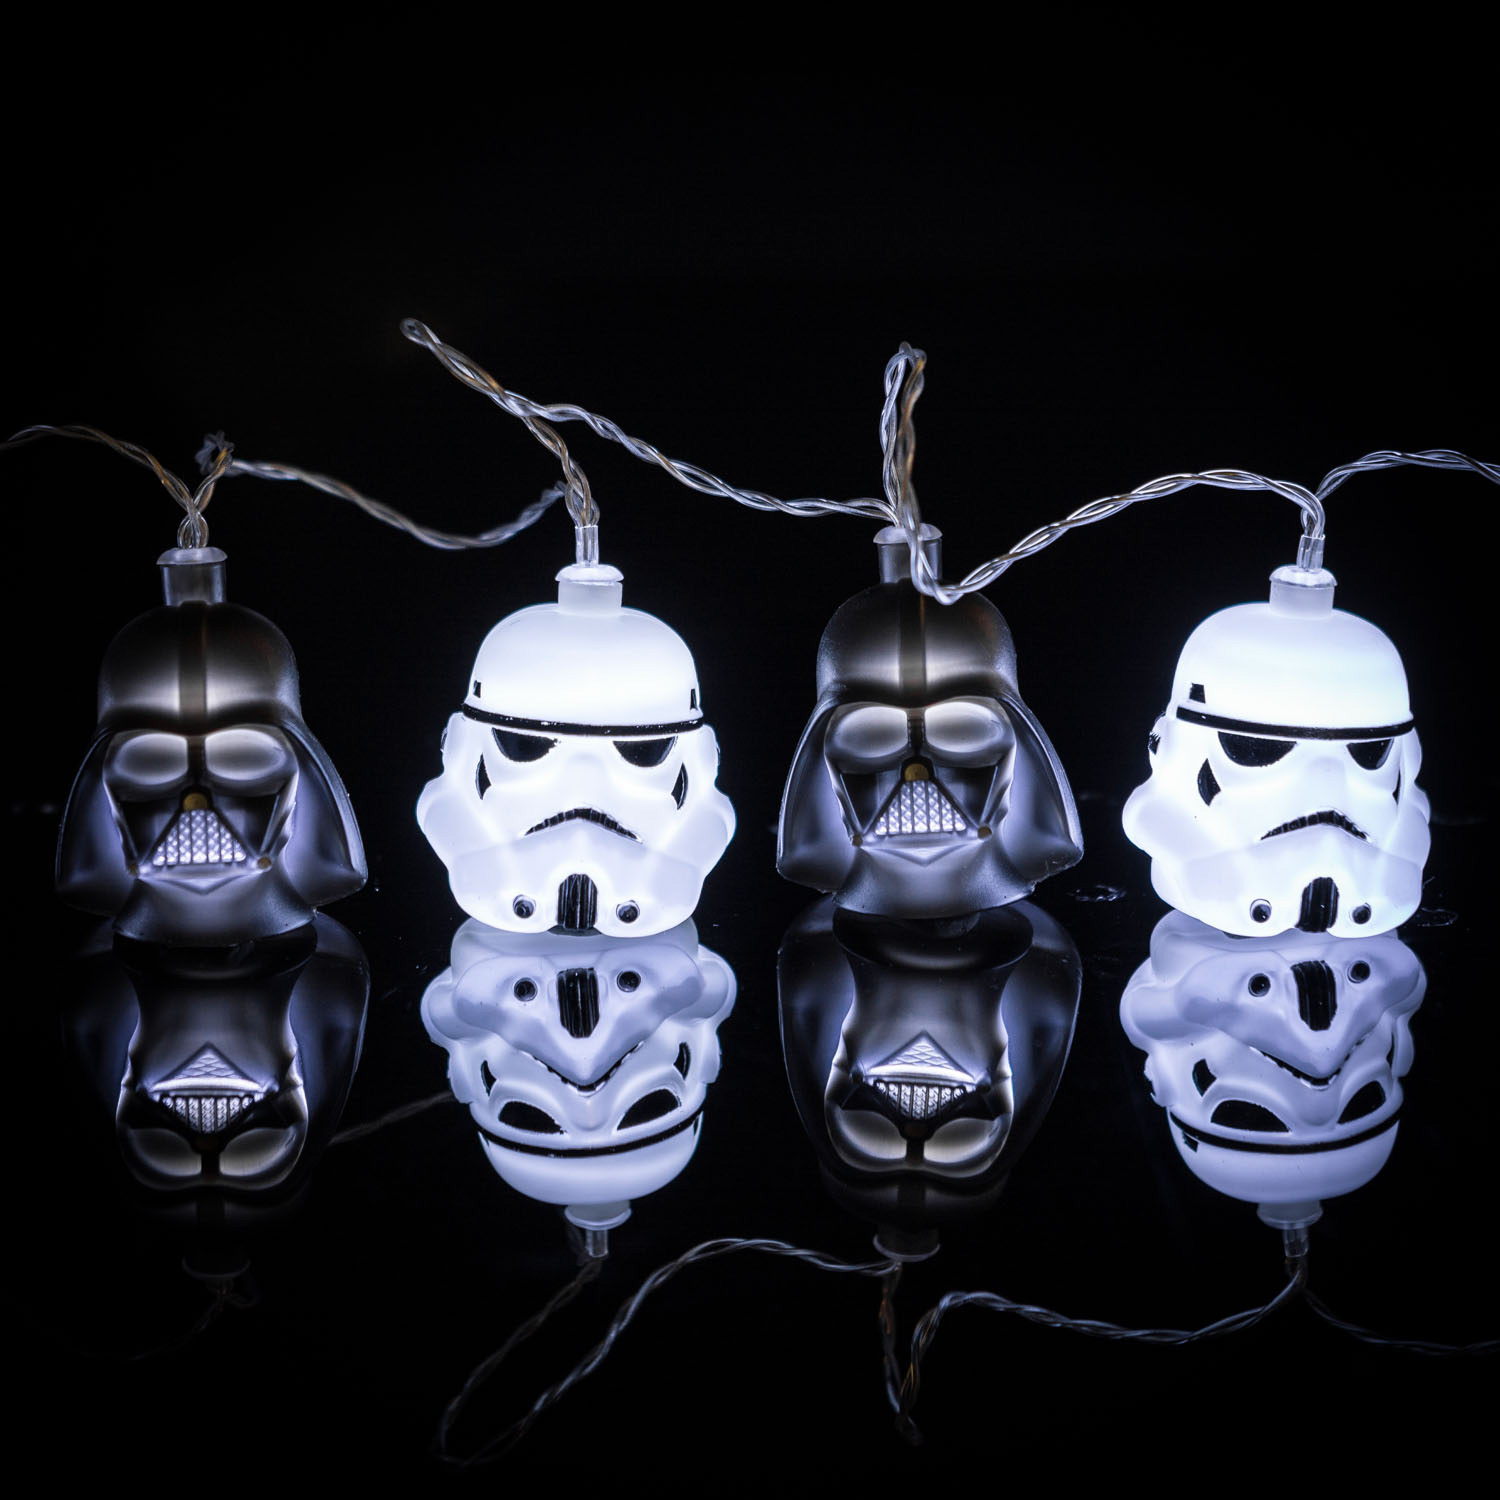 Star Wars Darth Vader Stormtrooper Lichterkette